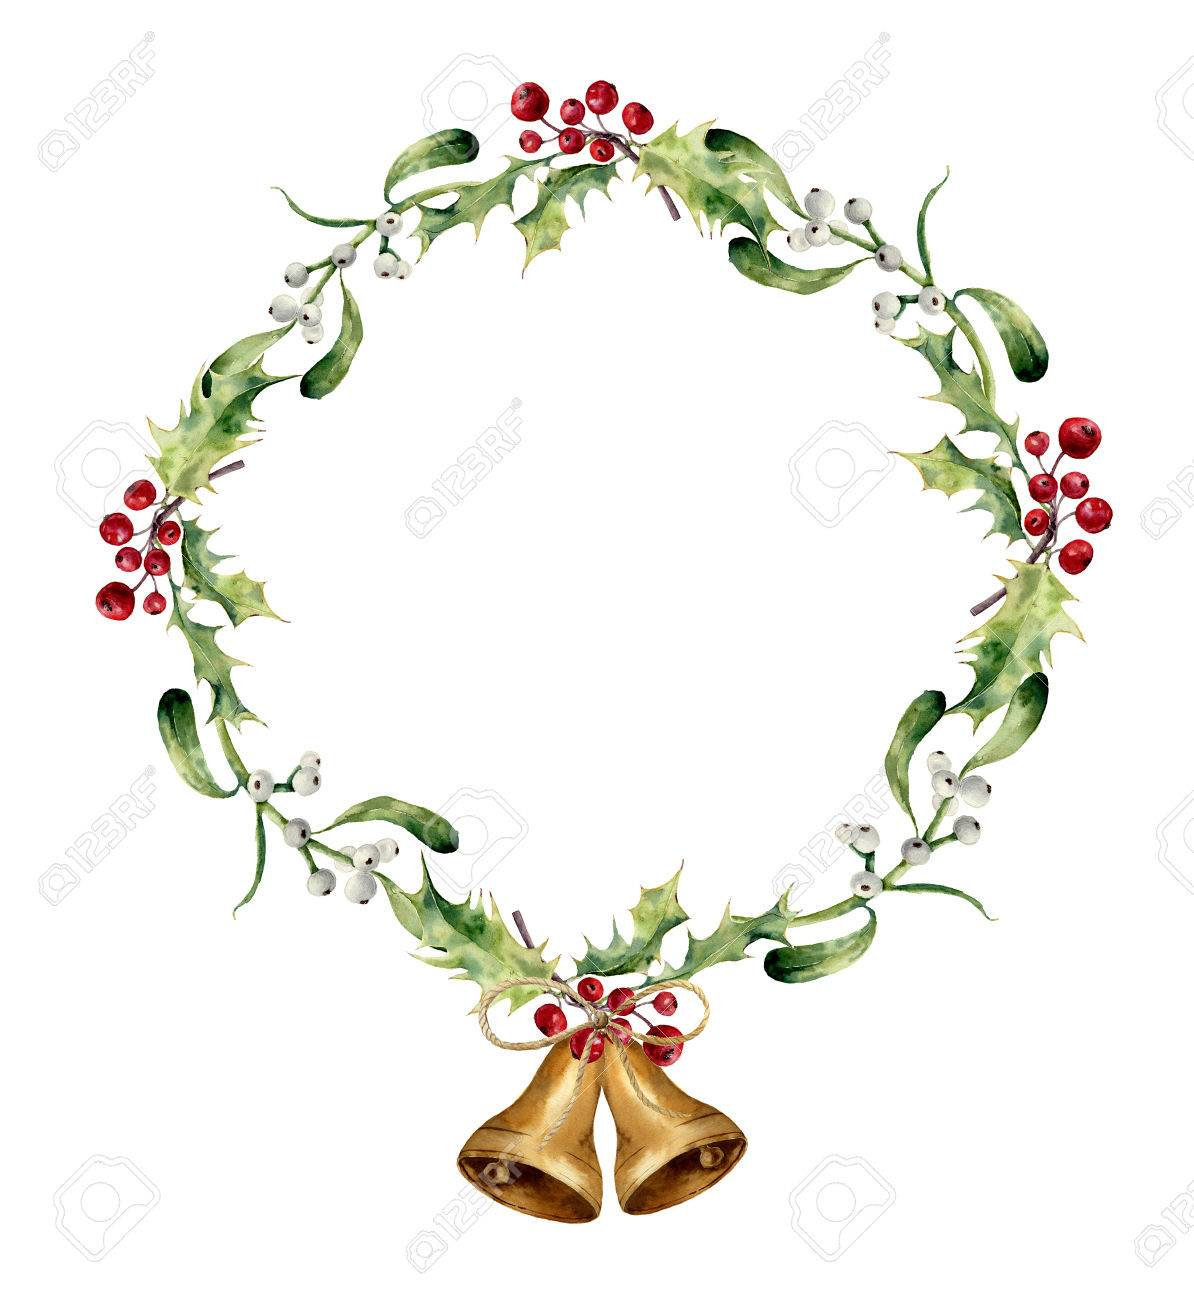 Christmas floral border stock photos freeimages com - Watercolor Christmas Wreath With Bells Holly And Mistletoe Hand Painted Christmas Floral Border Isolated